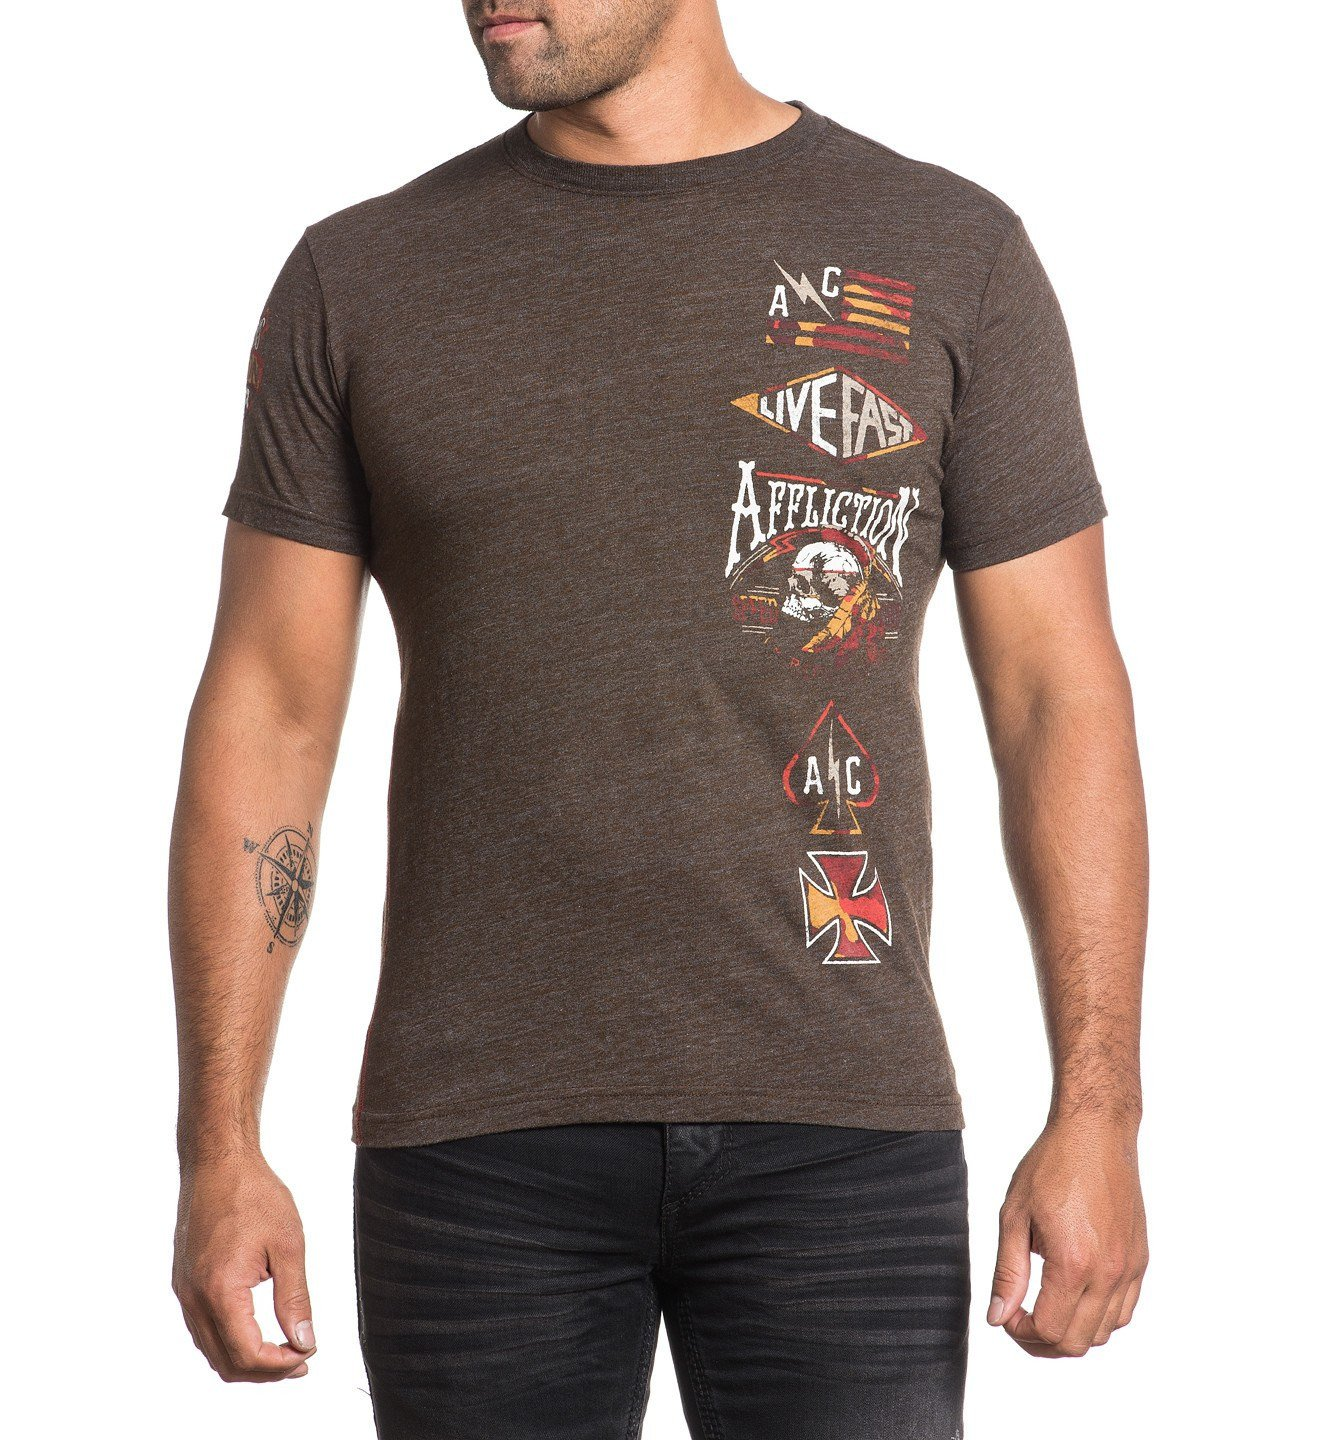 Thunder Shop - Mens Short Sleeve Tees - Affliction Clothing